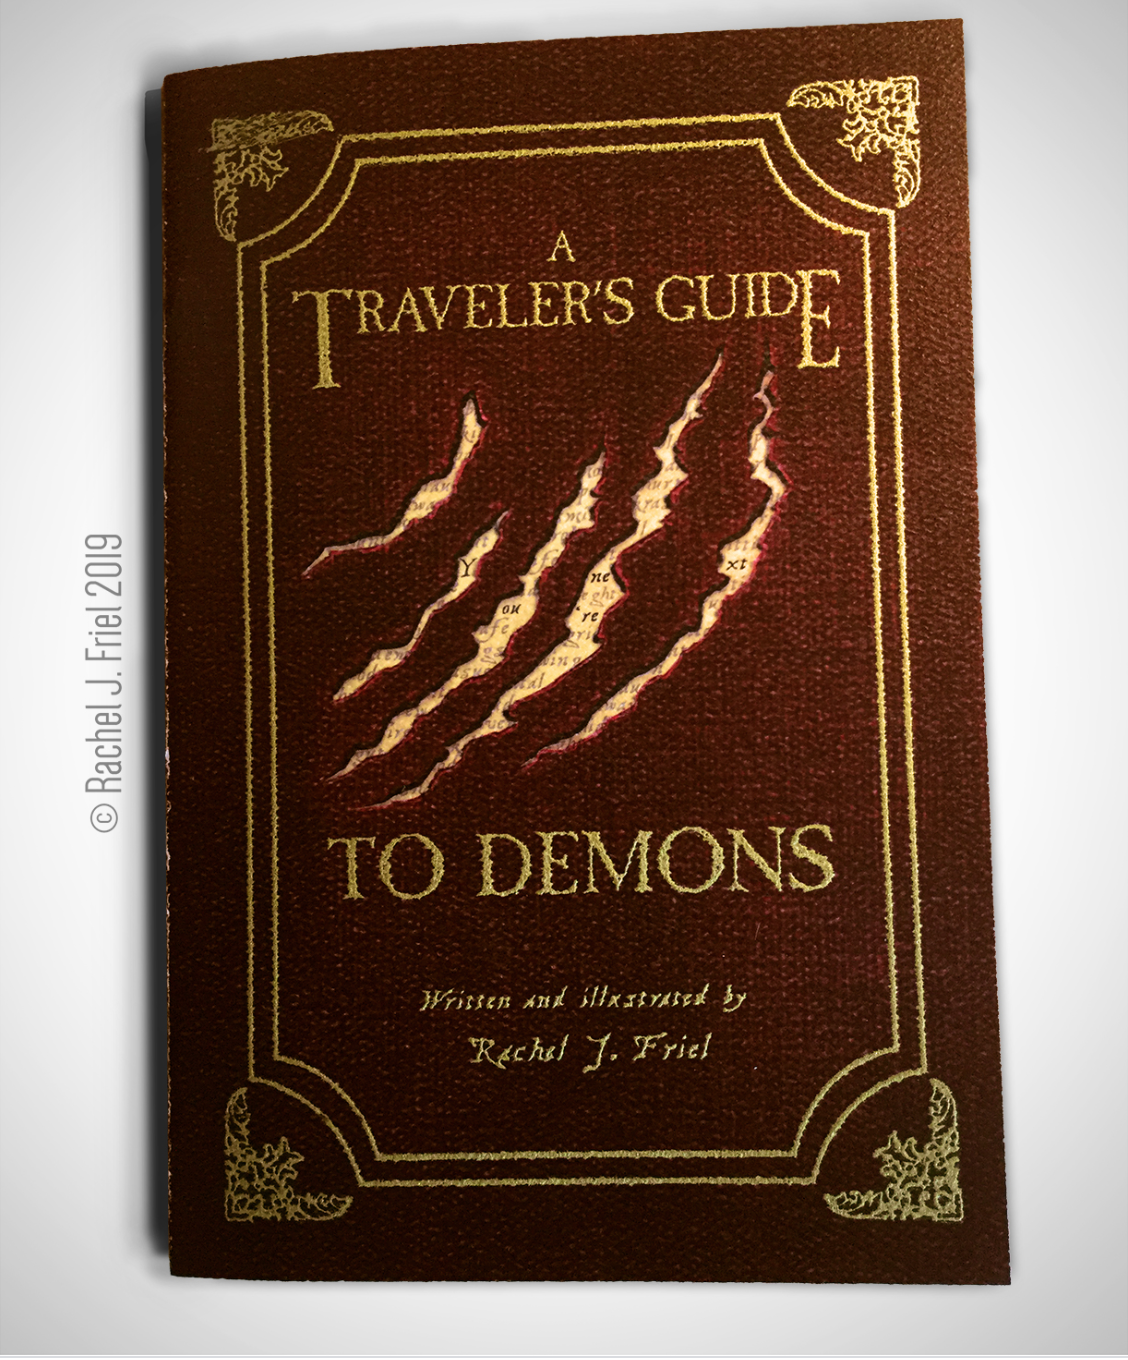 Image of A Traveler's Guide to Demons